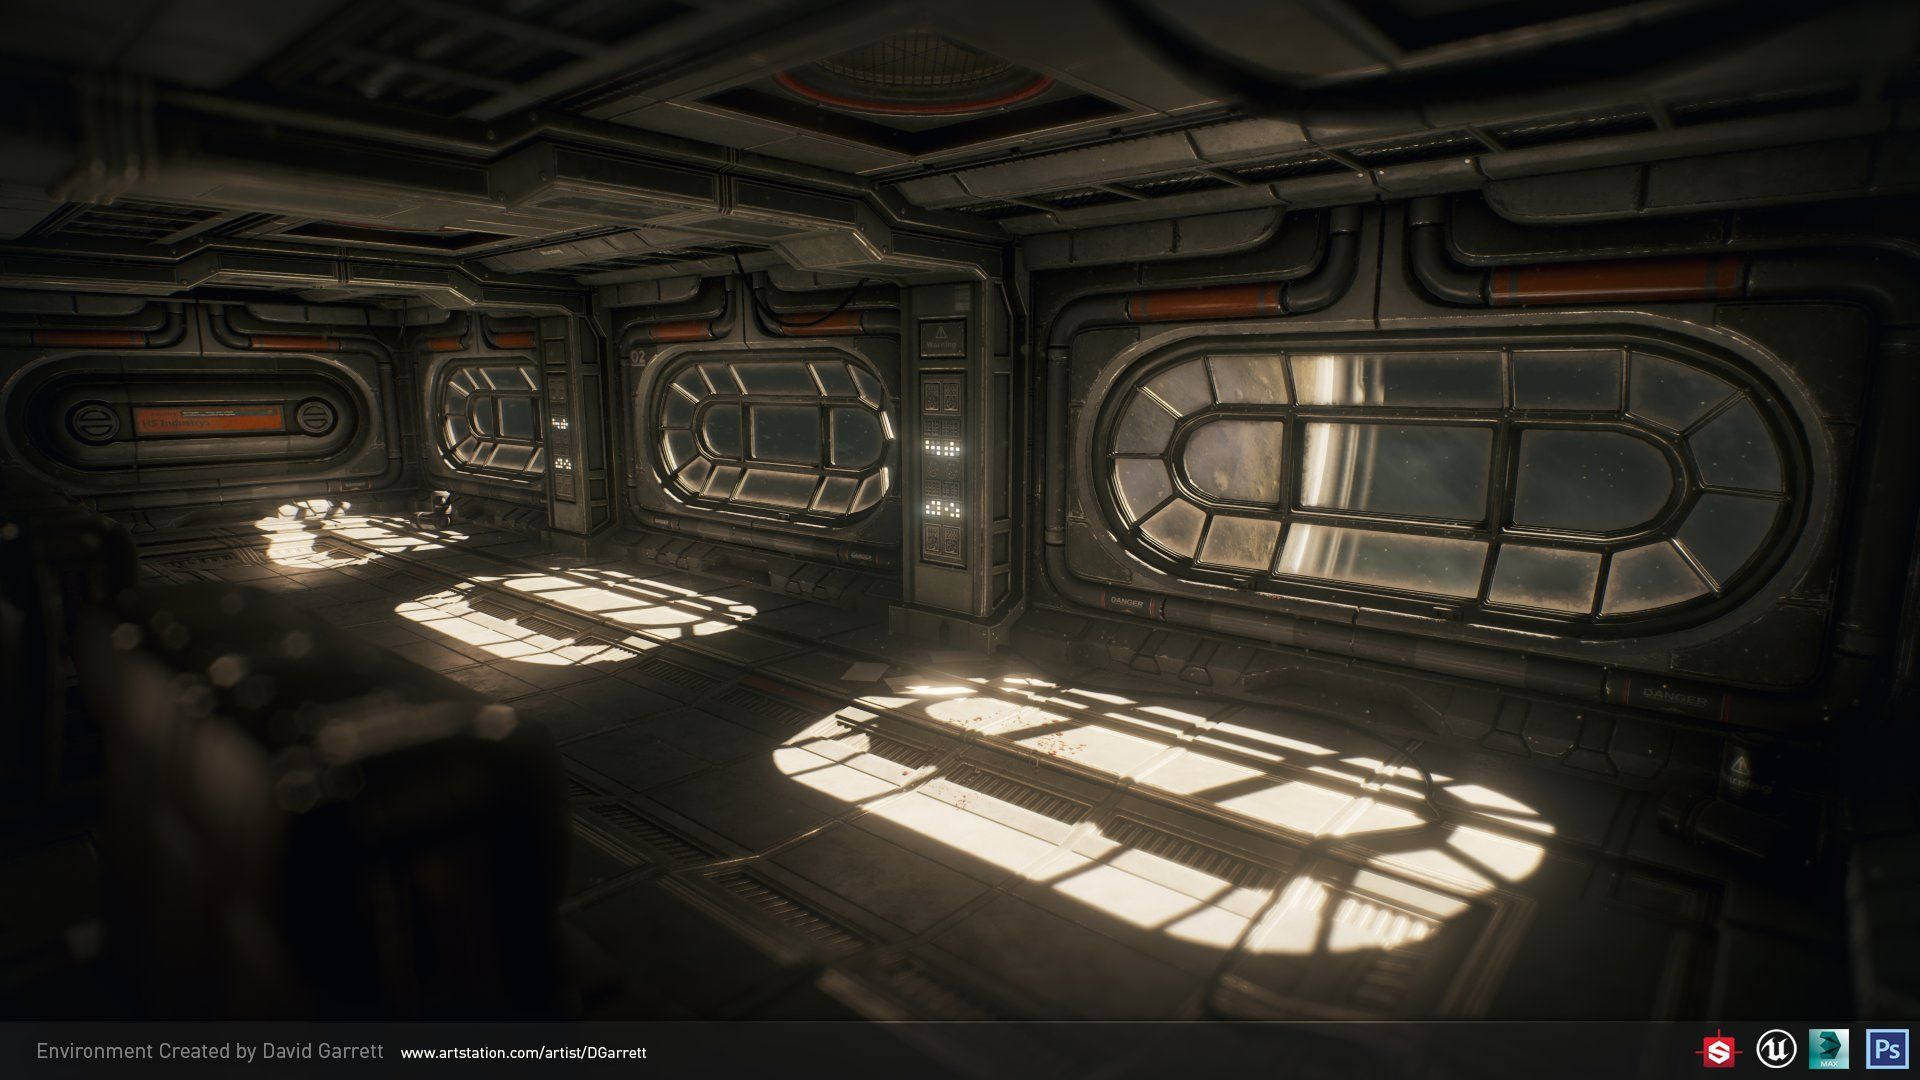 ArtStation - Spaceship interior UE4 environment, David Garrett